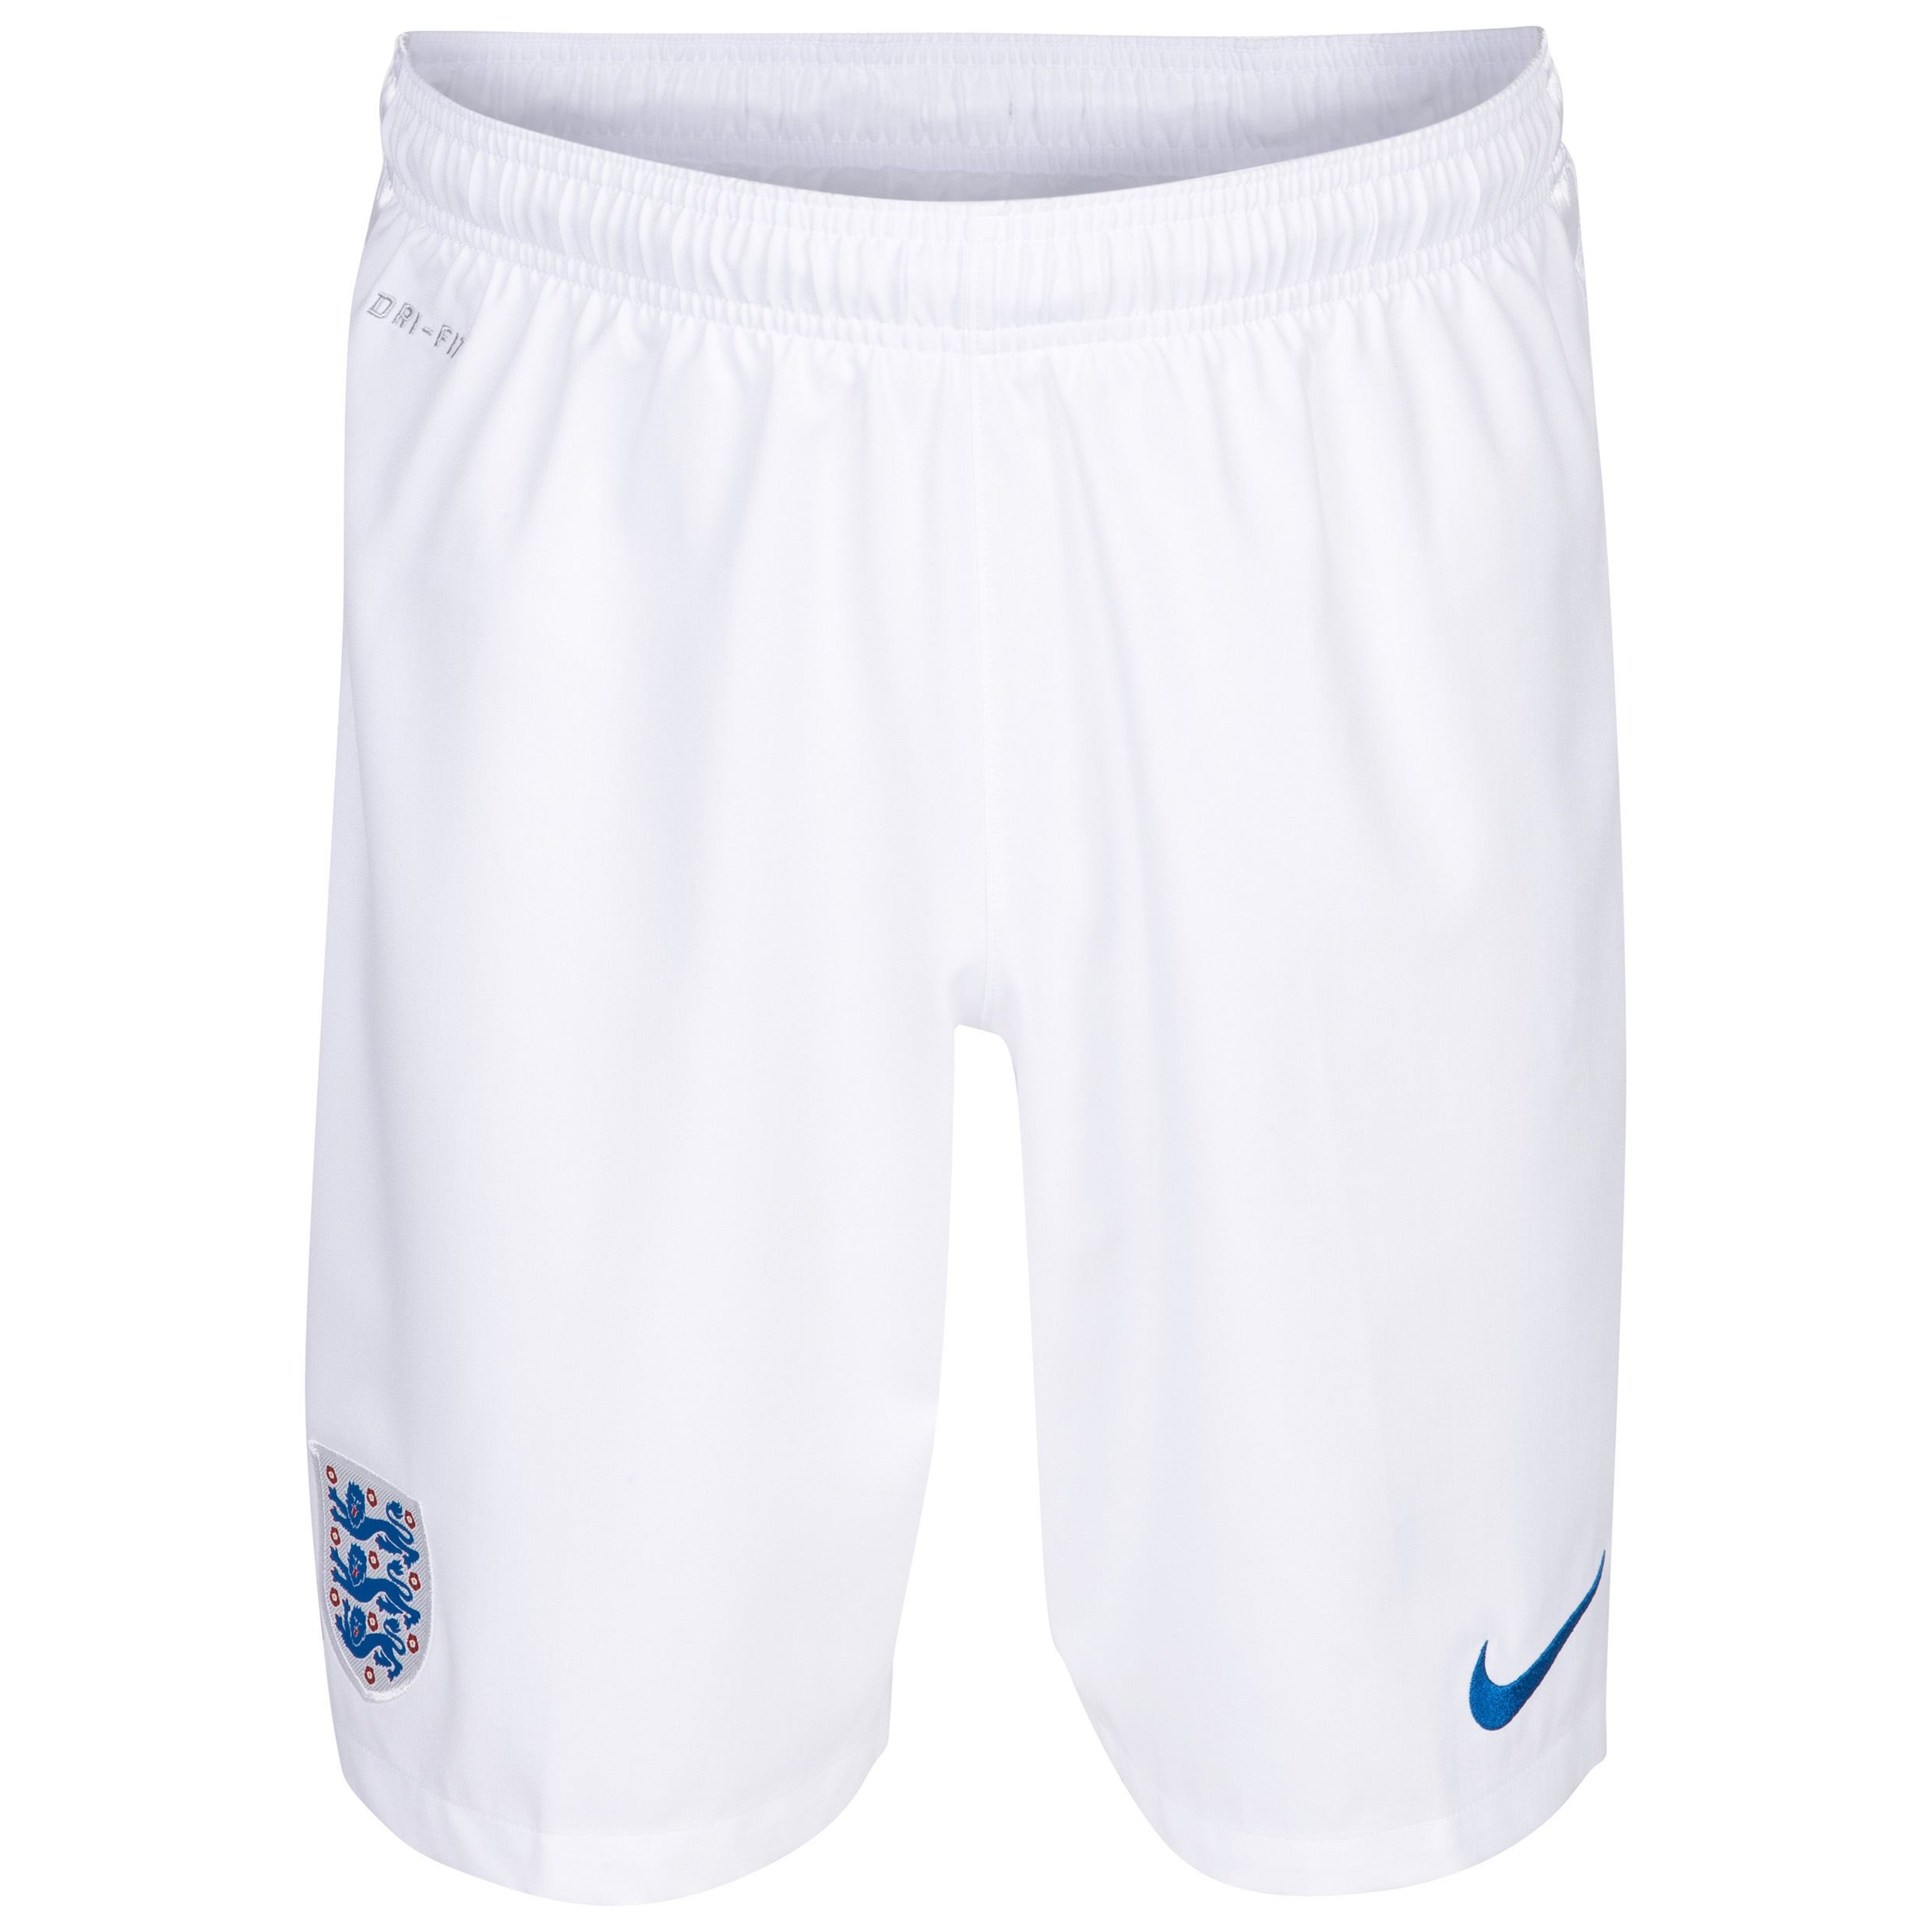 England Home Shorts 2014/15 White